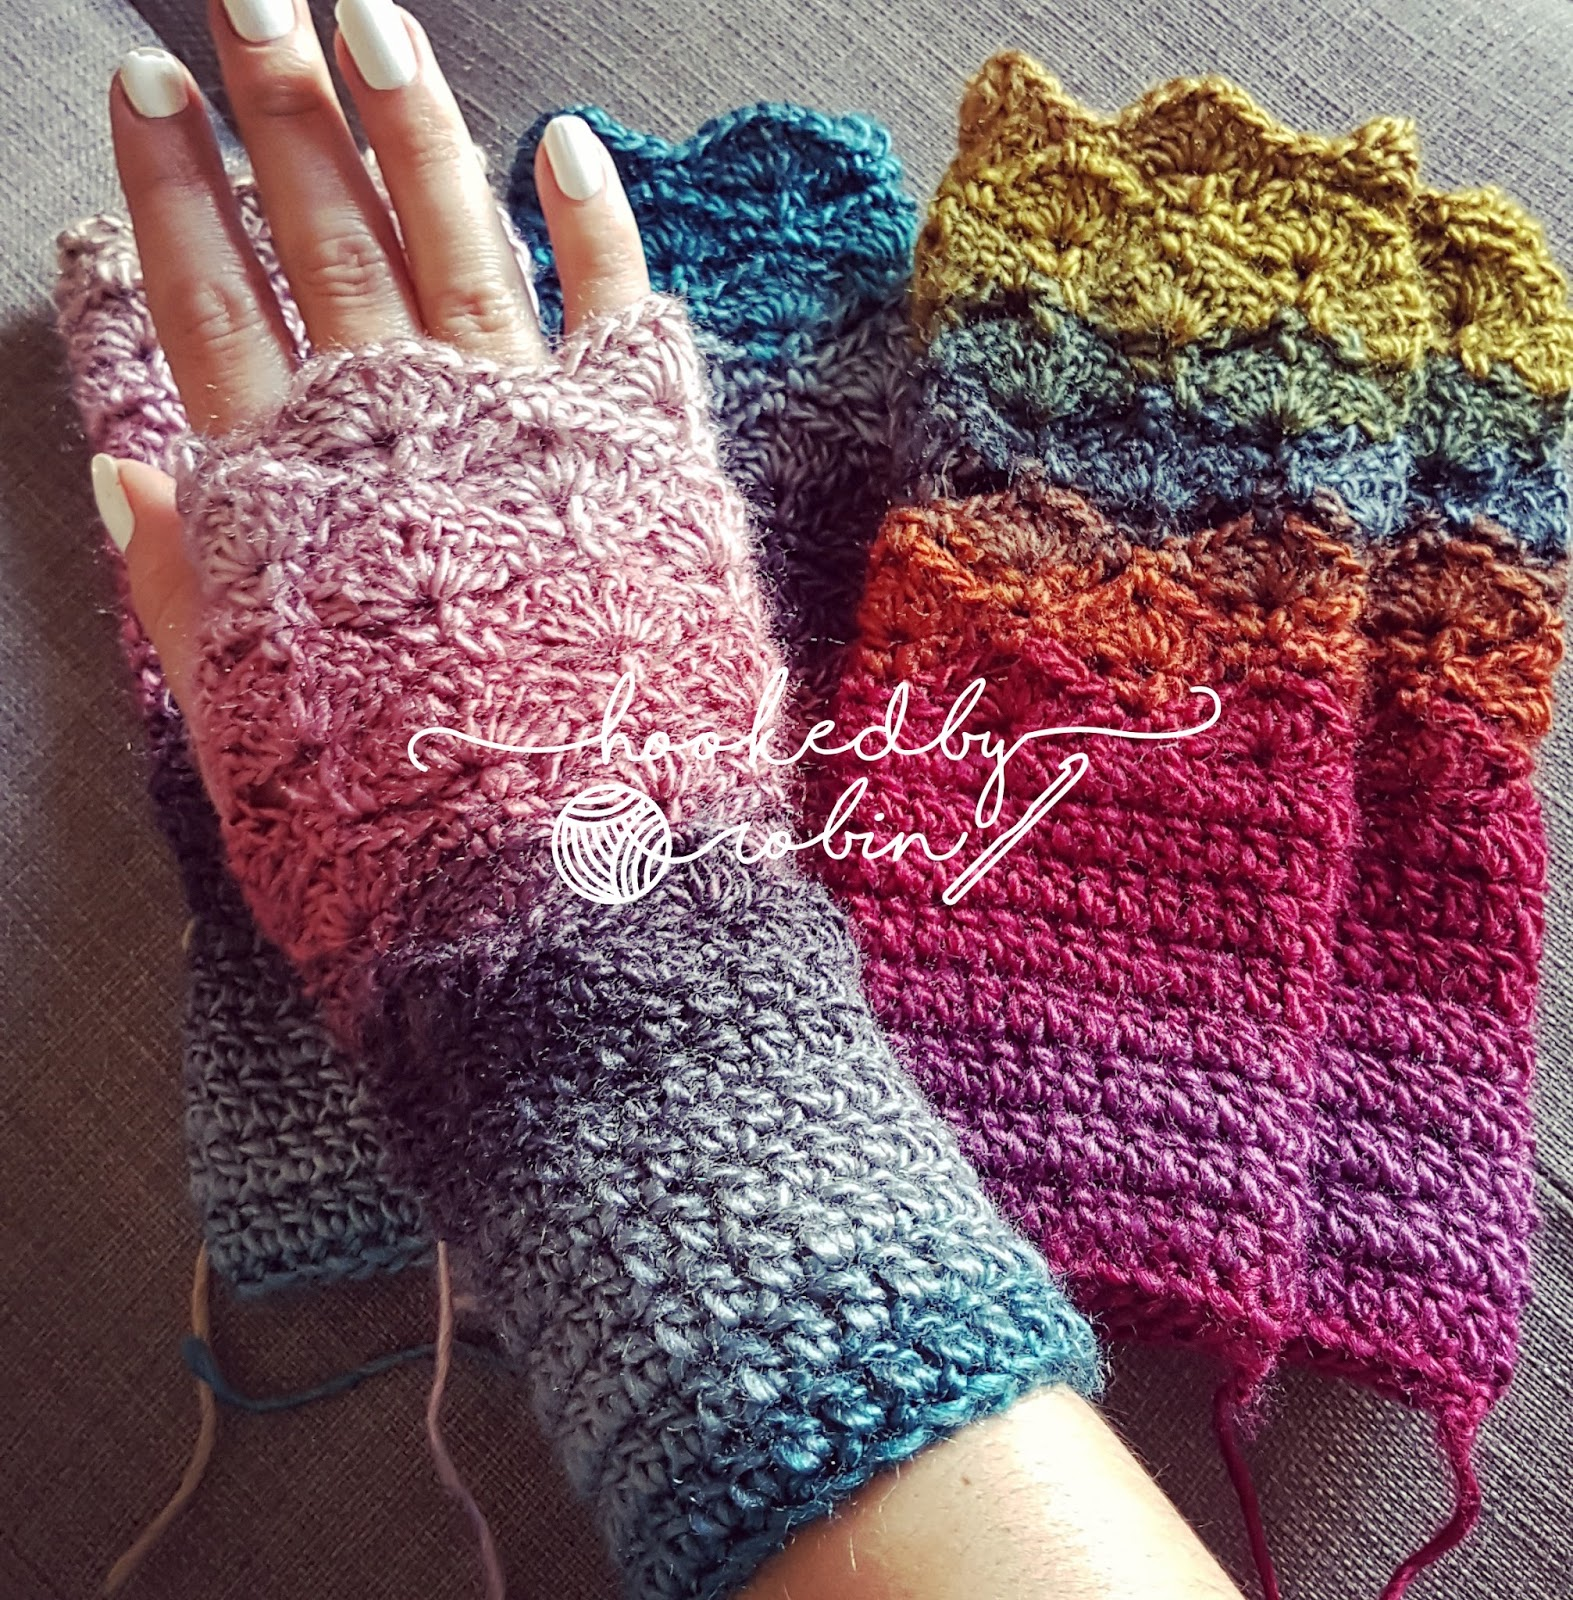 What are called fingerless gloves 68